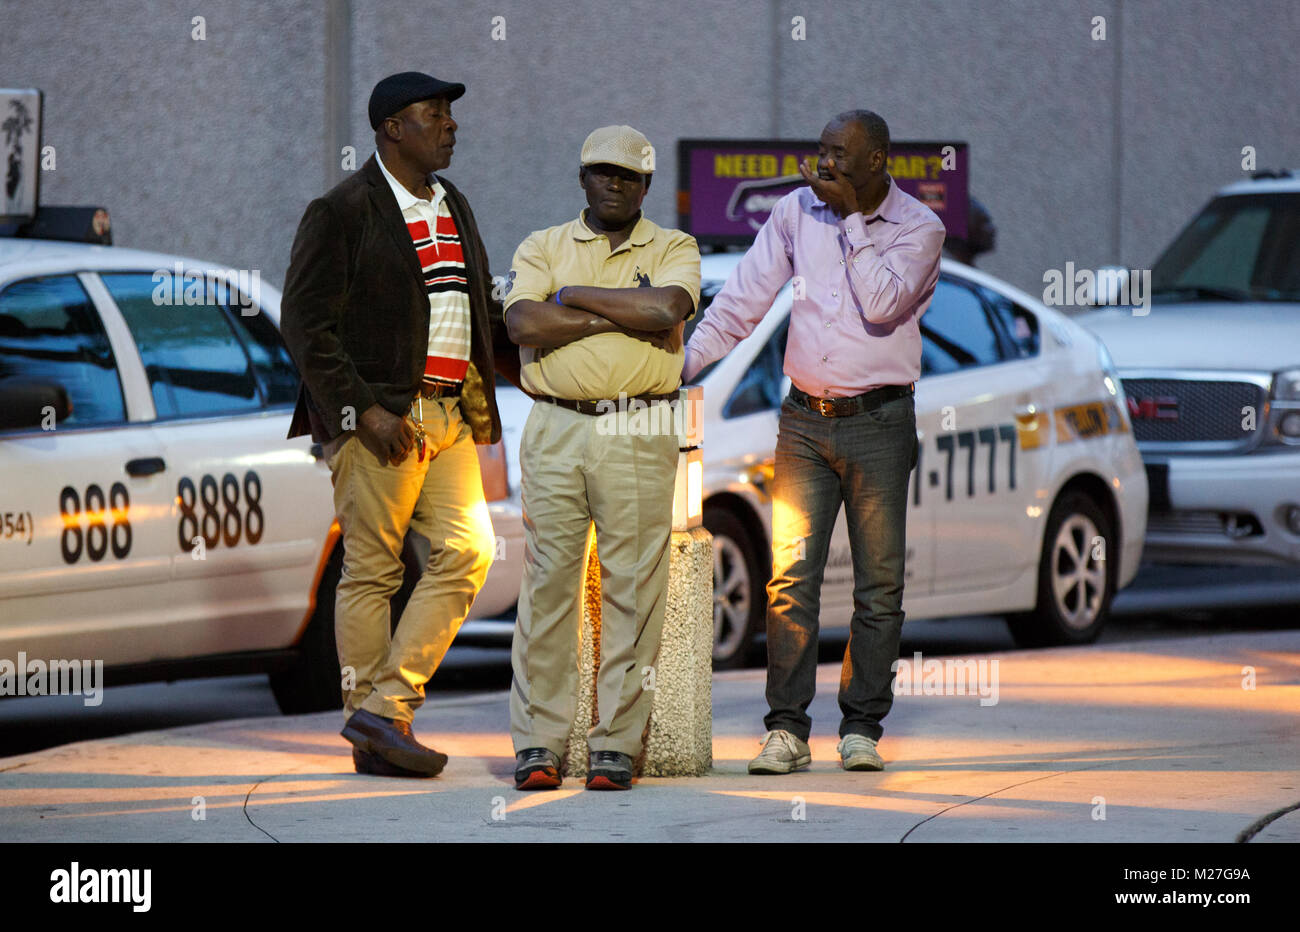 Taxi cab drivers waiting for fares, Fort Lauderdale Hollywood International  Airport Florida